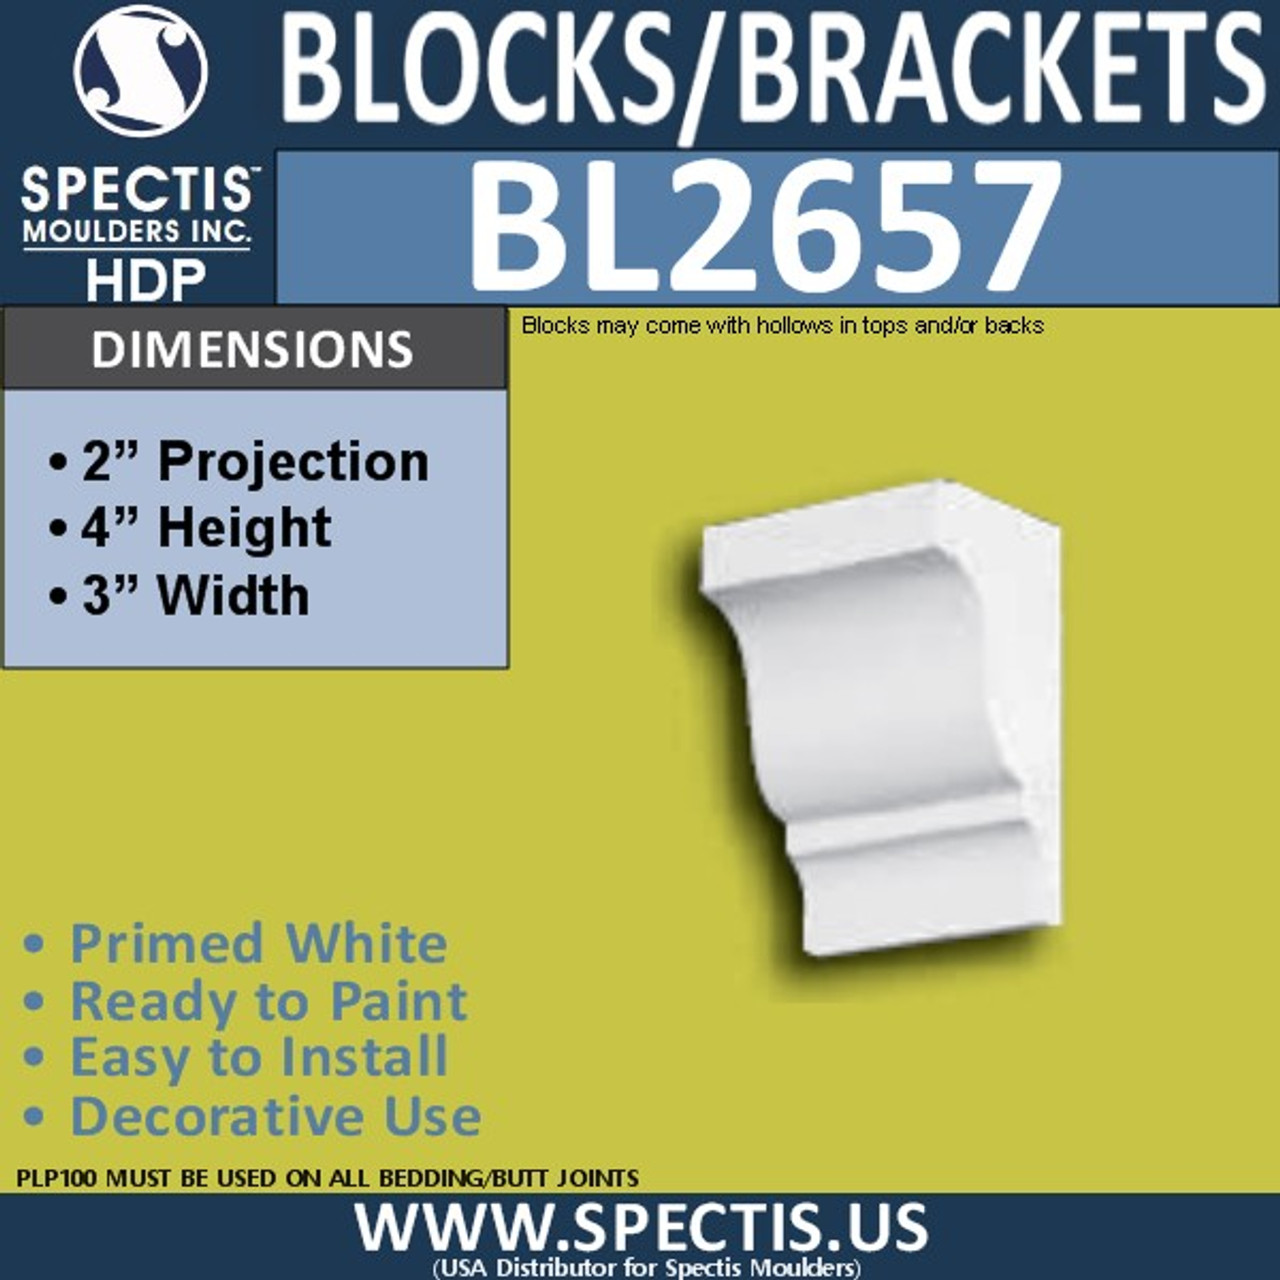 "BL2657 Eave Block or Bracket 3""W x 4""H x 2"" P"